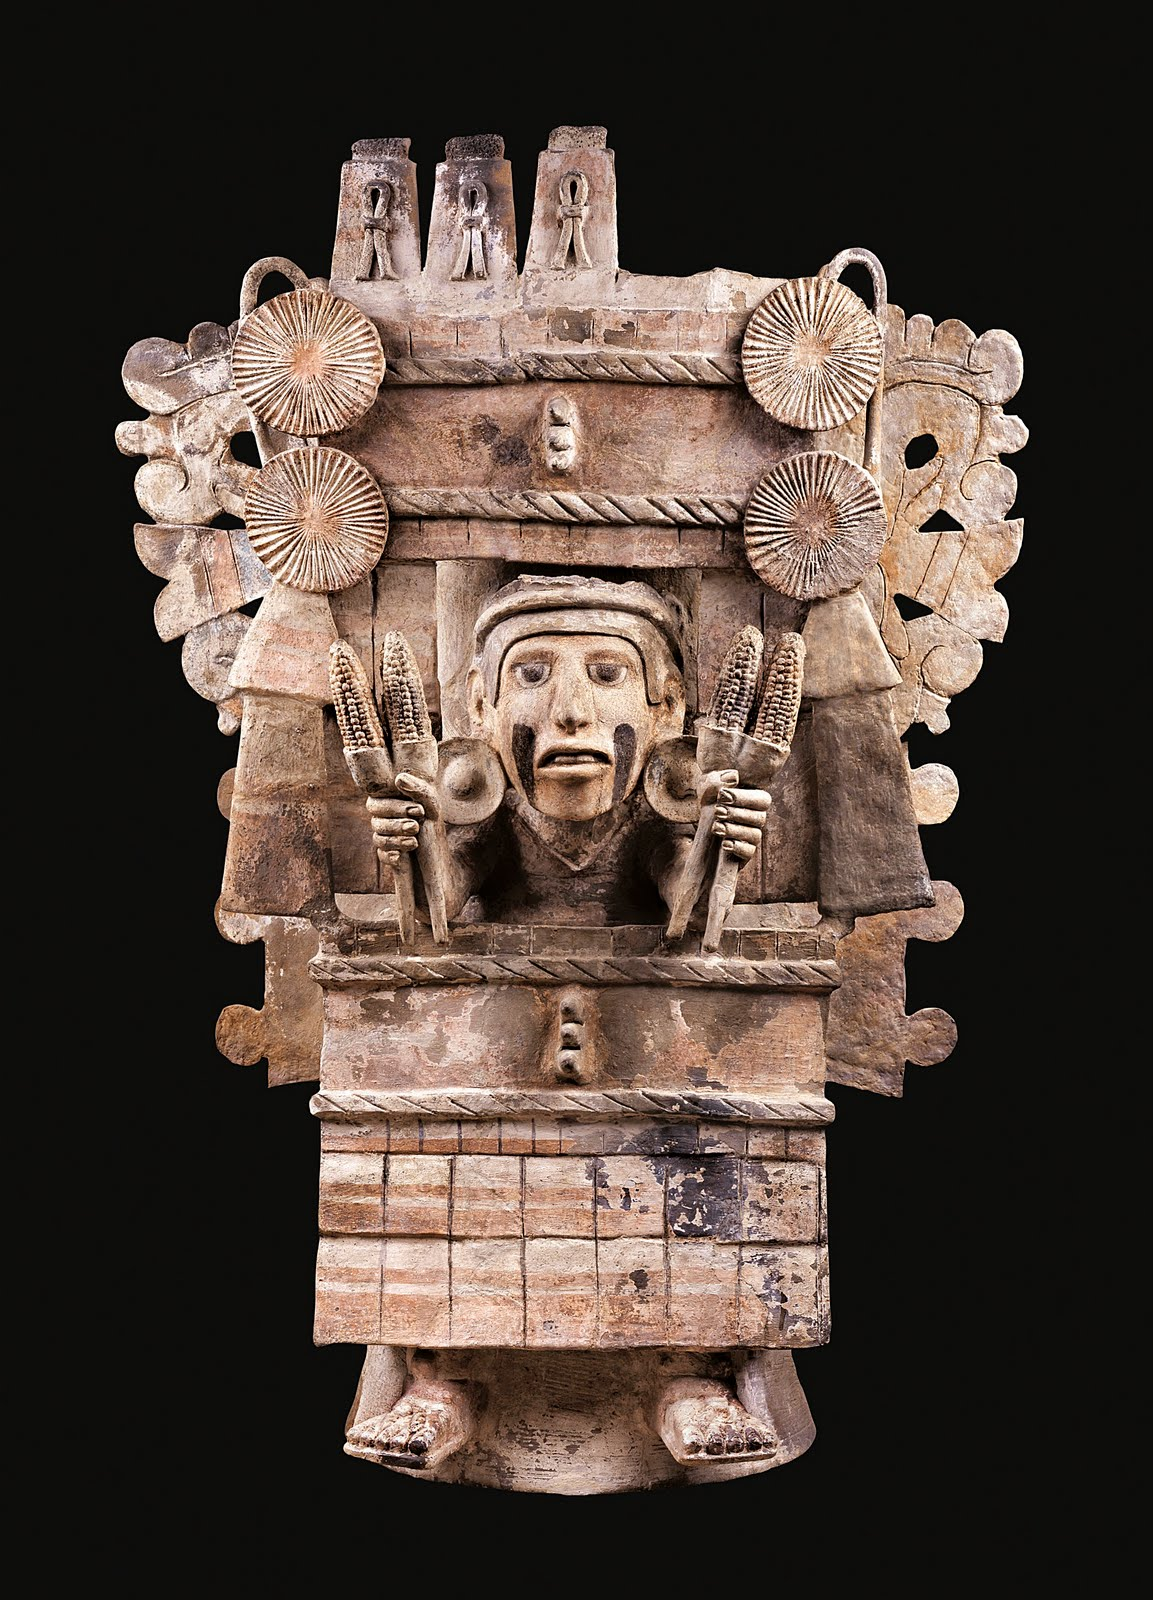 A chorus line with mara davi begins at marriott theatre - S Michigan Ave Chicago Showcases 17 Compelling Major Works Of Pre Columbian Art From Mexico In An All New Exhibit Ballplayers Gods And Rainmaker